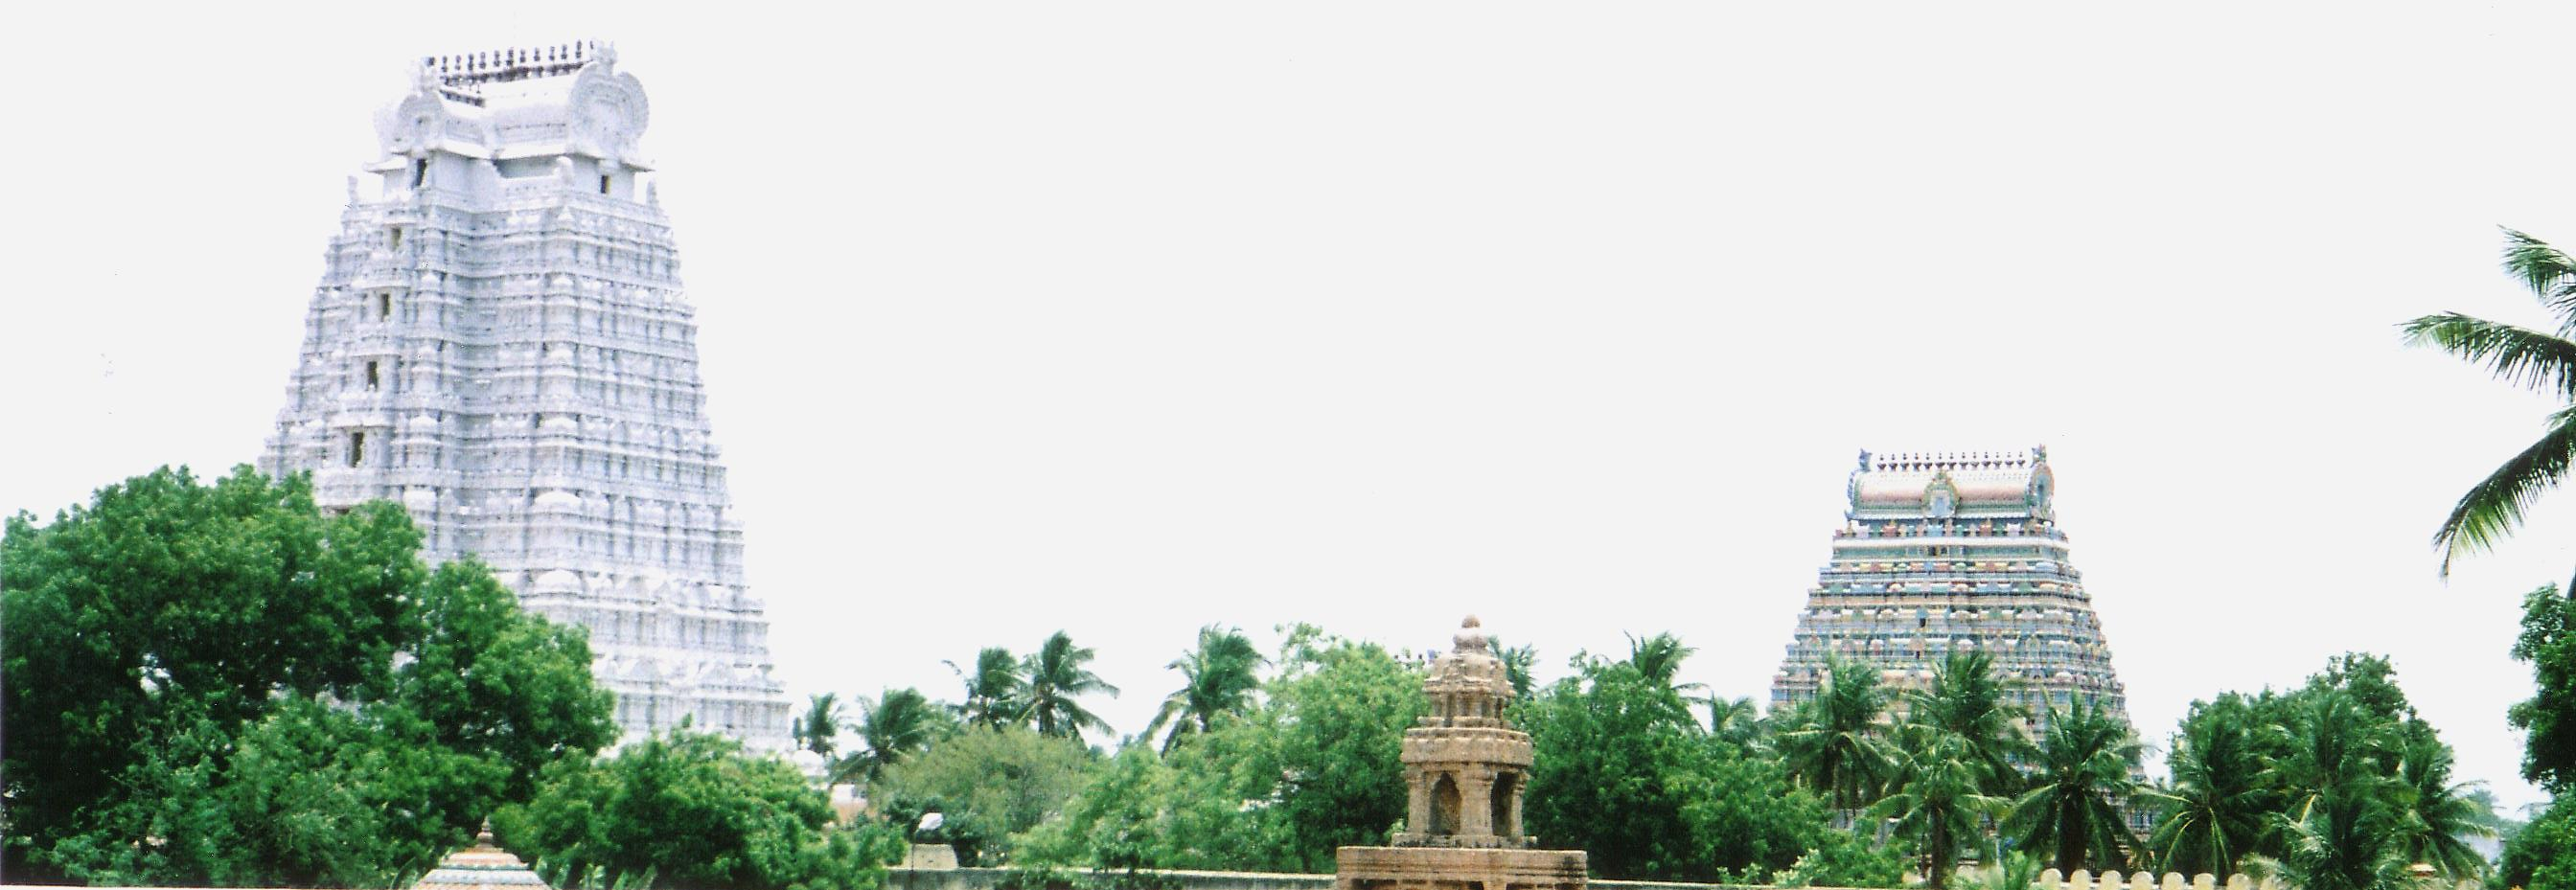 trichy temple 2